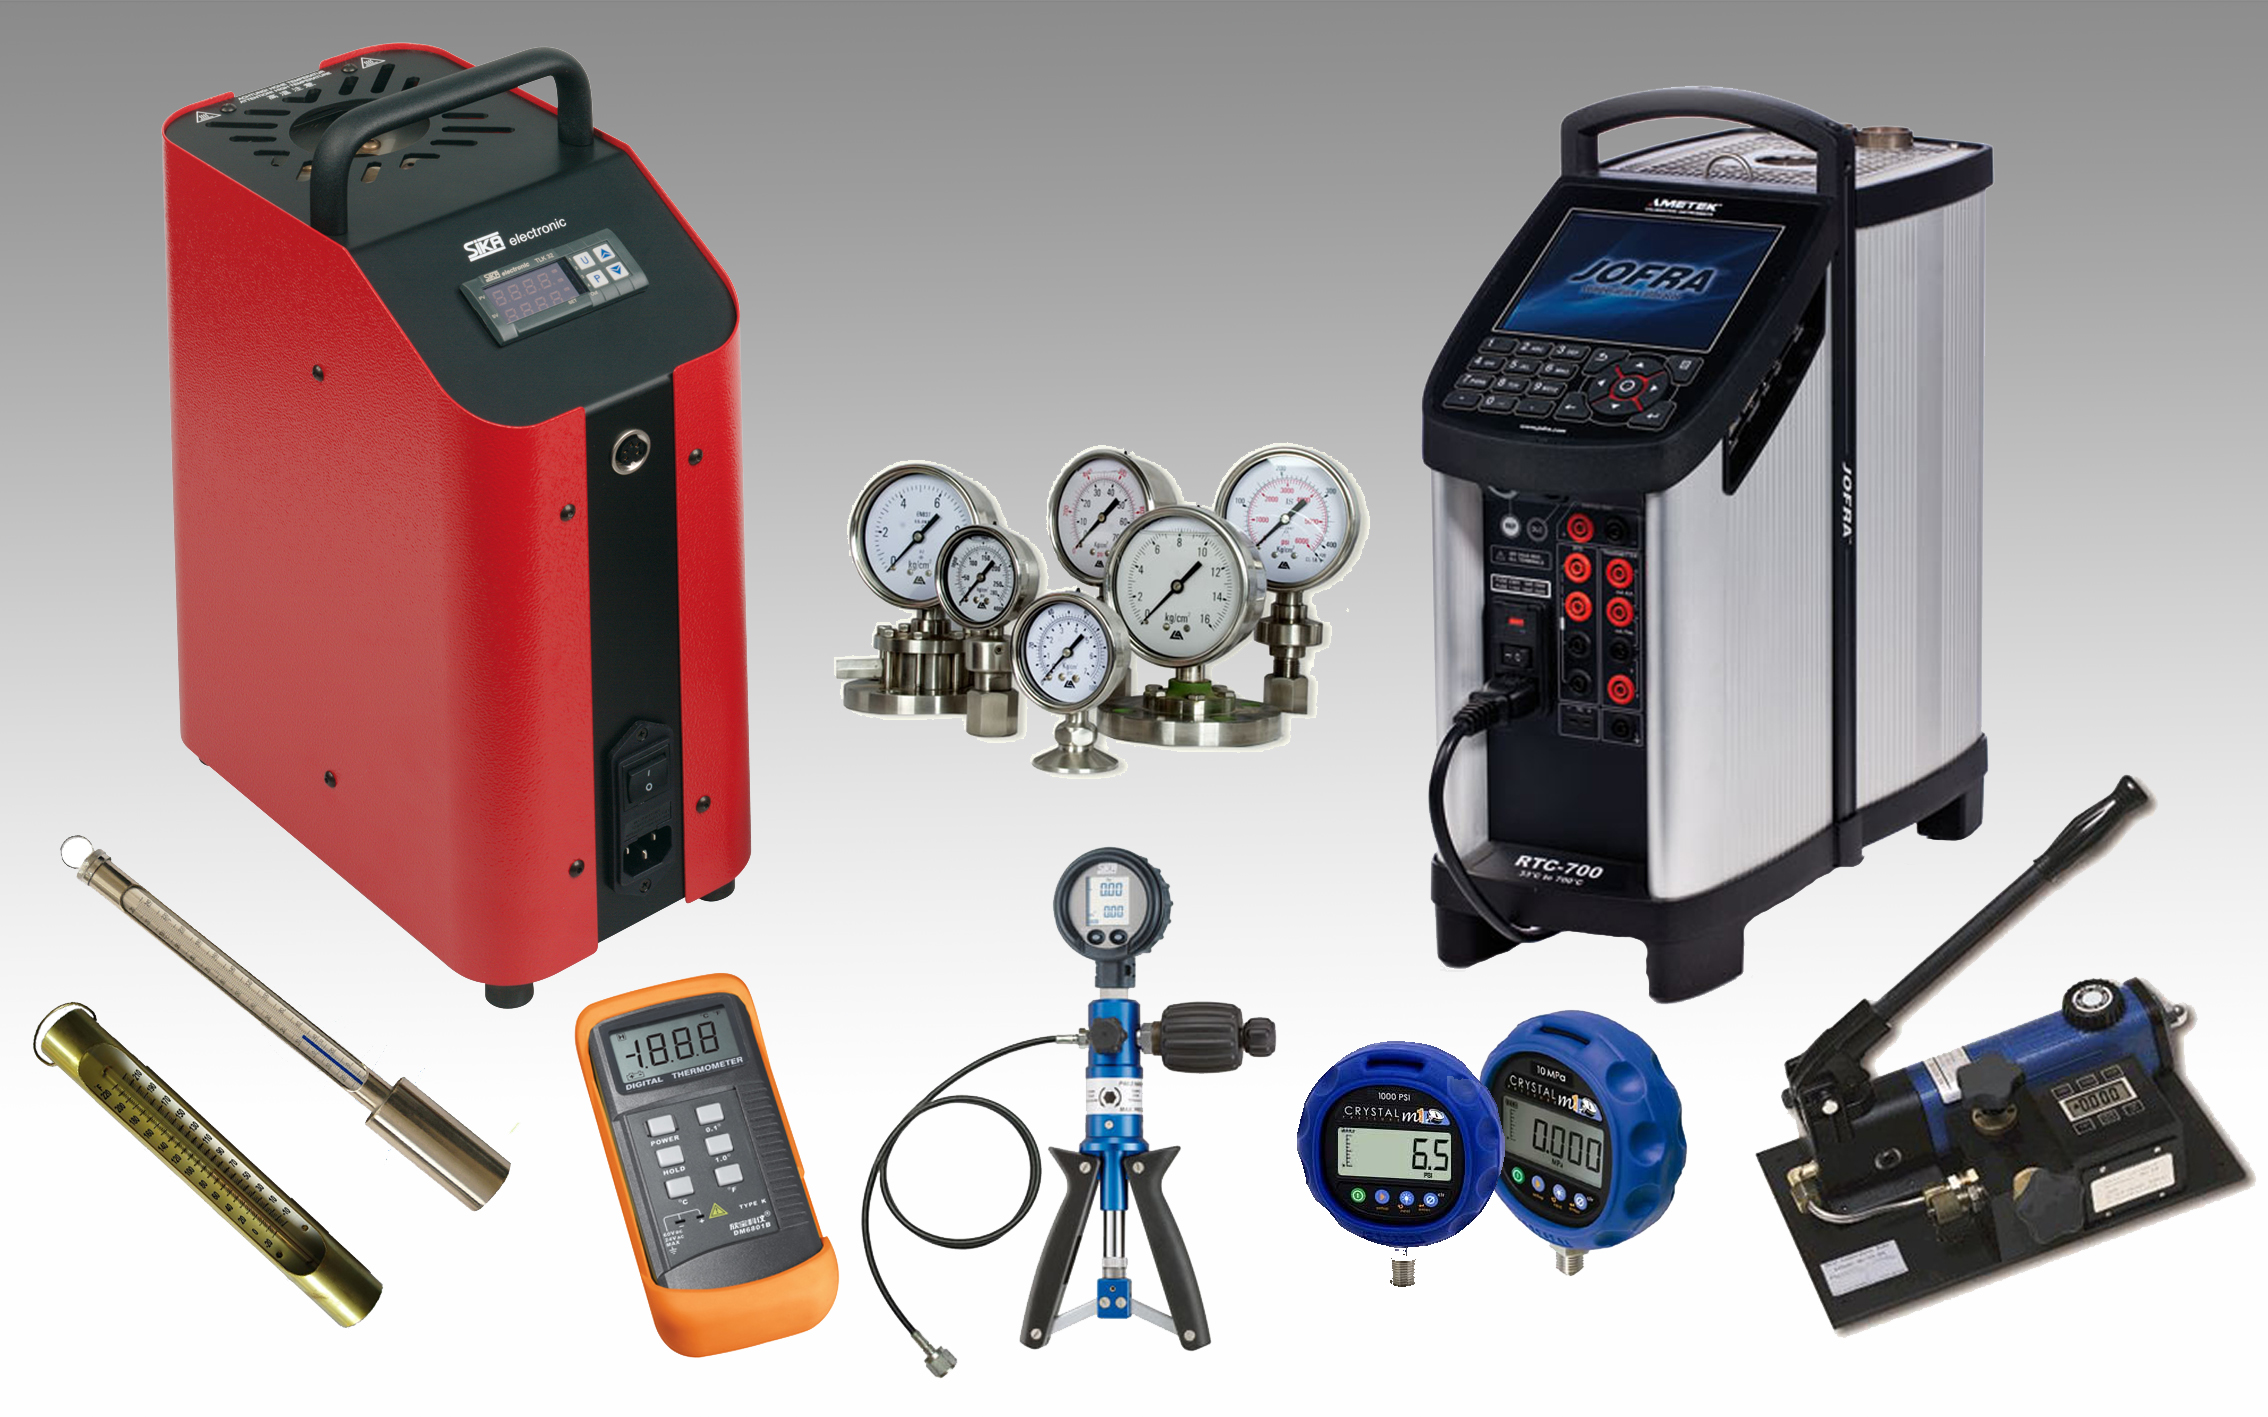 Metrology Measuring Instruments : Gas detection center antwerp safety consulting